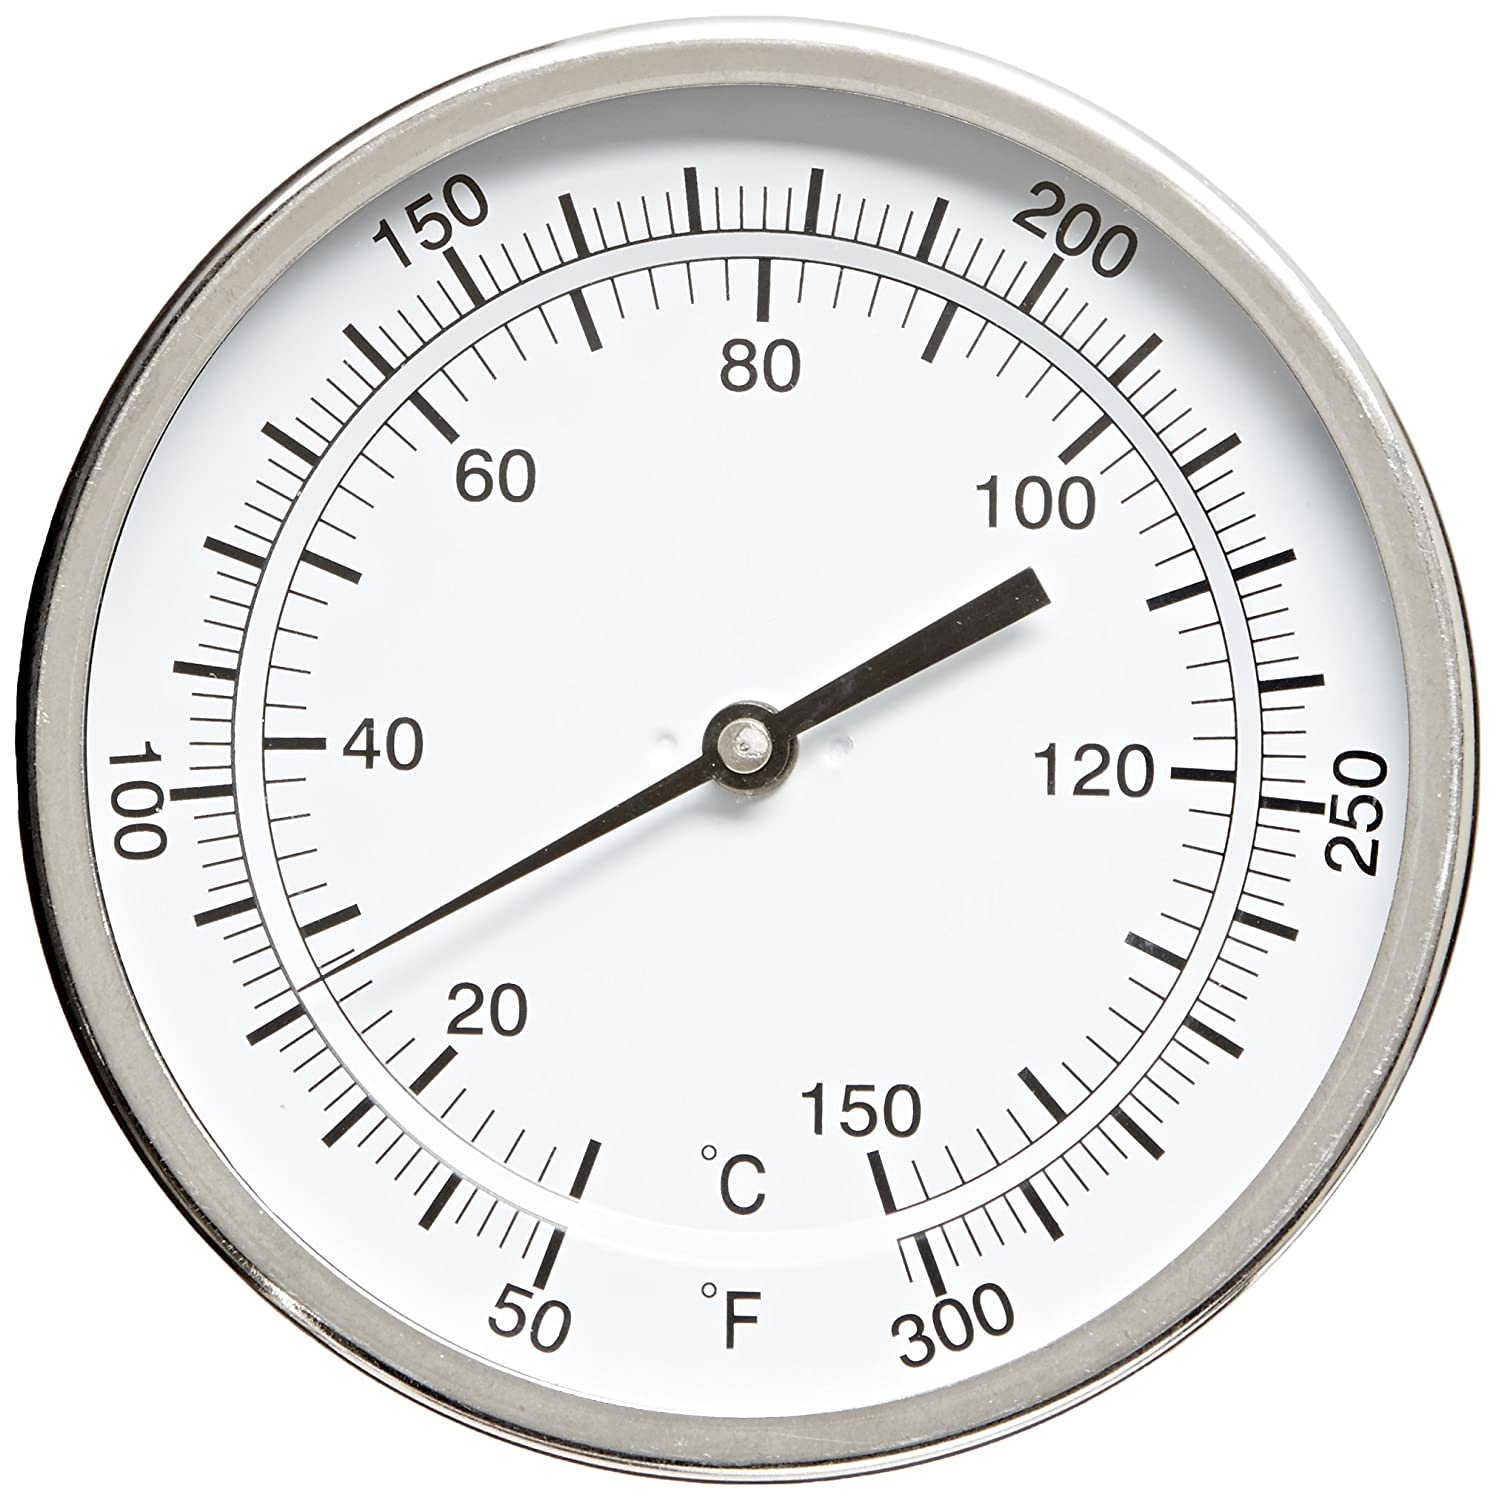 "PIC Gauge B5A9-MM 5"" Dial Size, 50/300°F and 10/149°C, 9' Stem Length, Adjustable Angle Connection, Stainless Steel Case, 316 Stainless Steel Stem Bimetal Thermometer 9 Stem Length PIC Gauges"